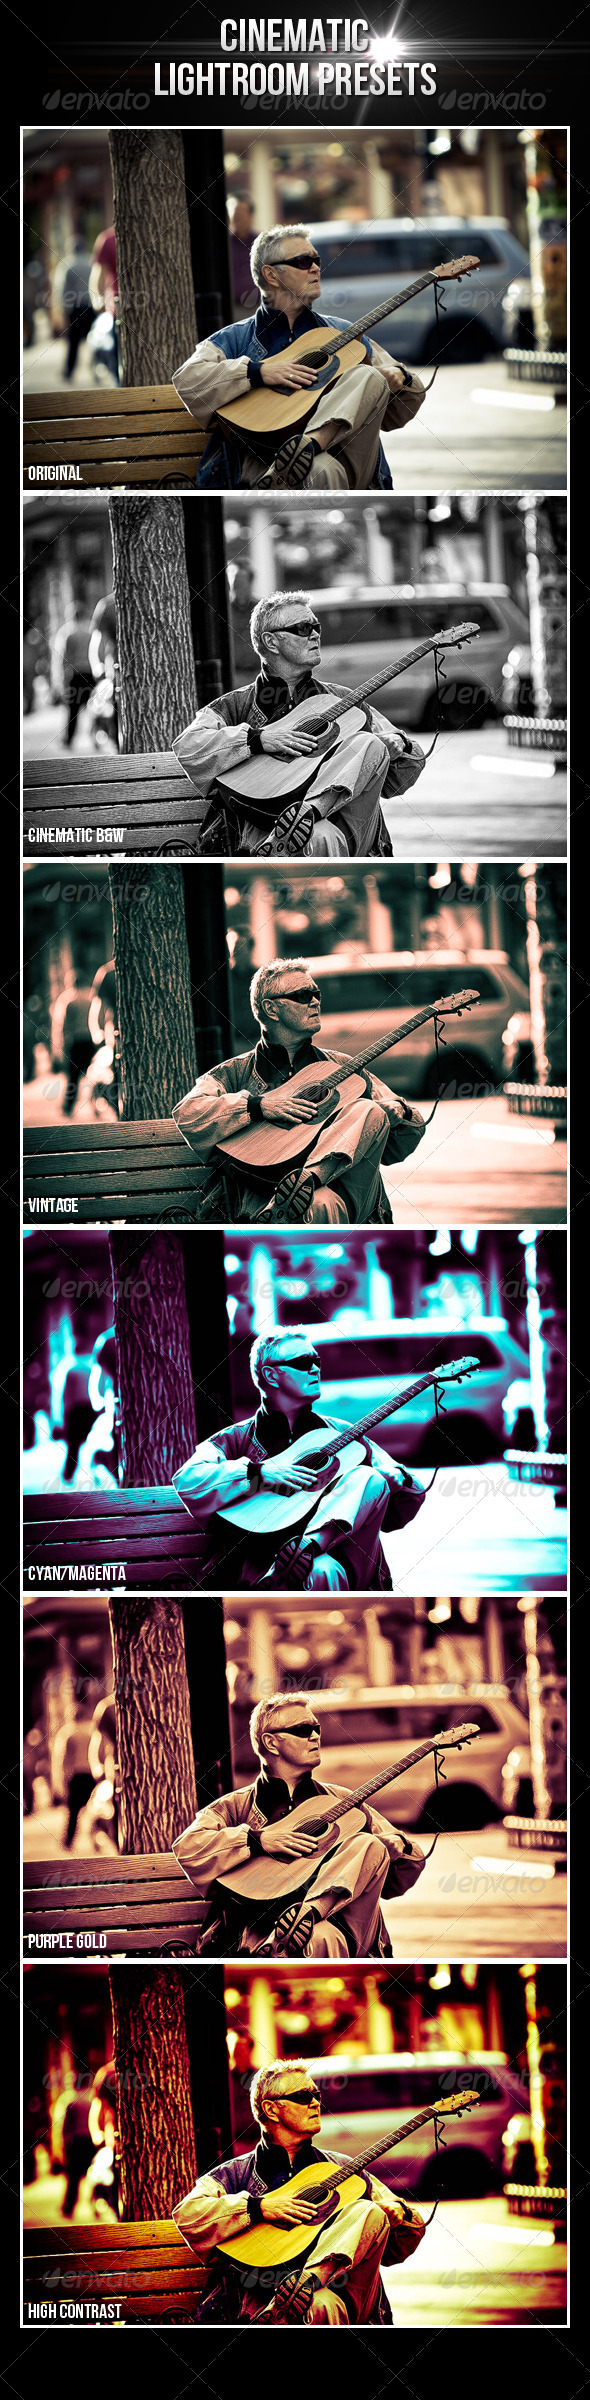 GraphicRiver Cinematic Lightroom Presets 5285939